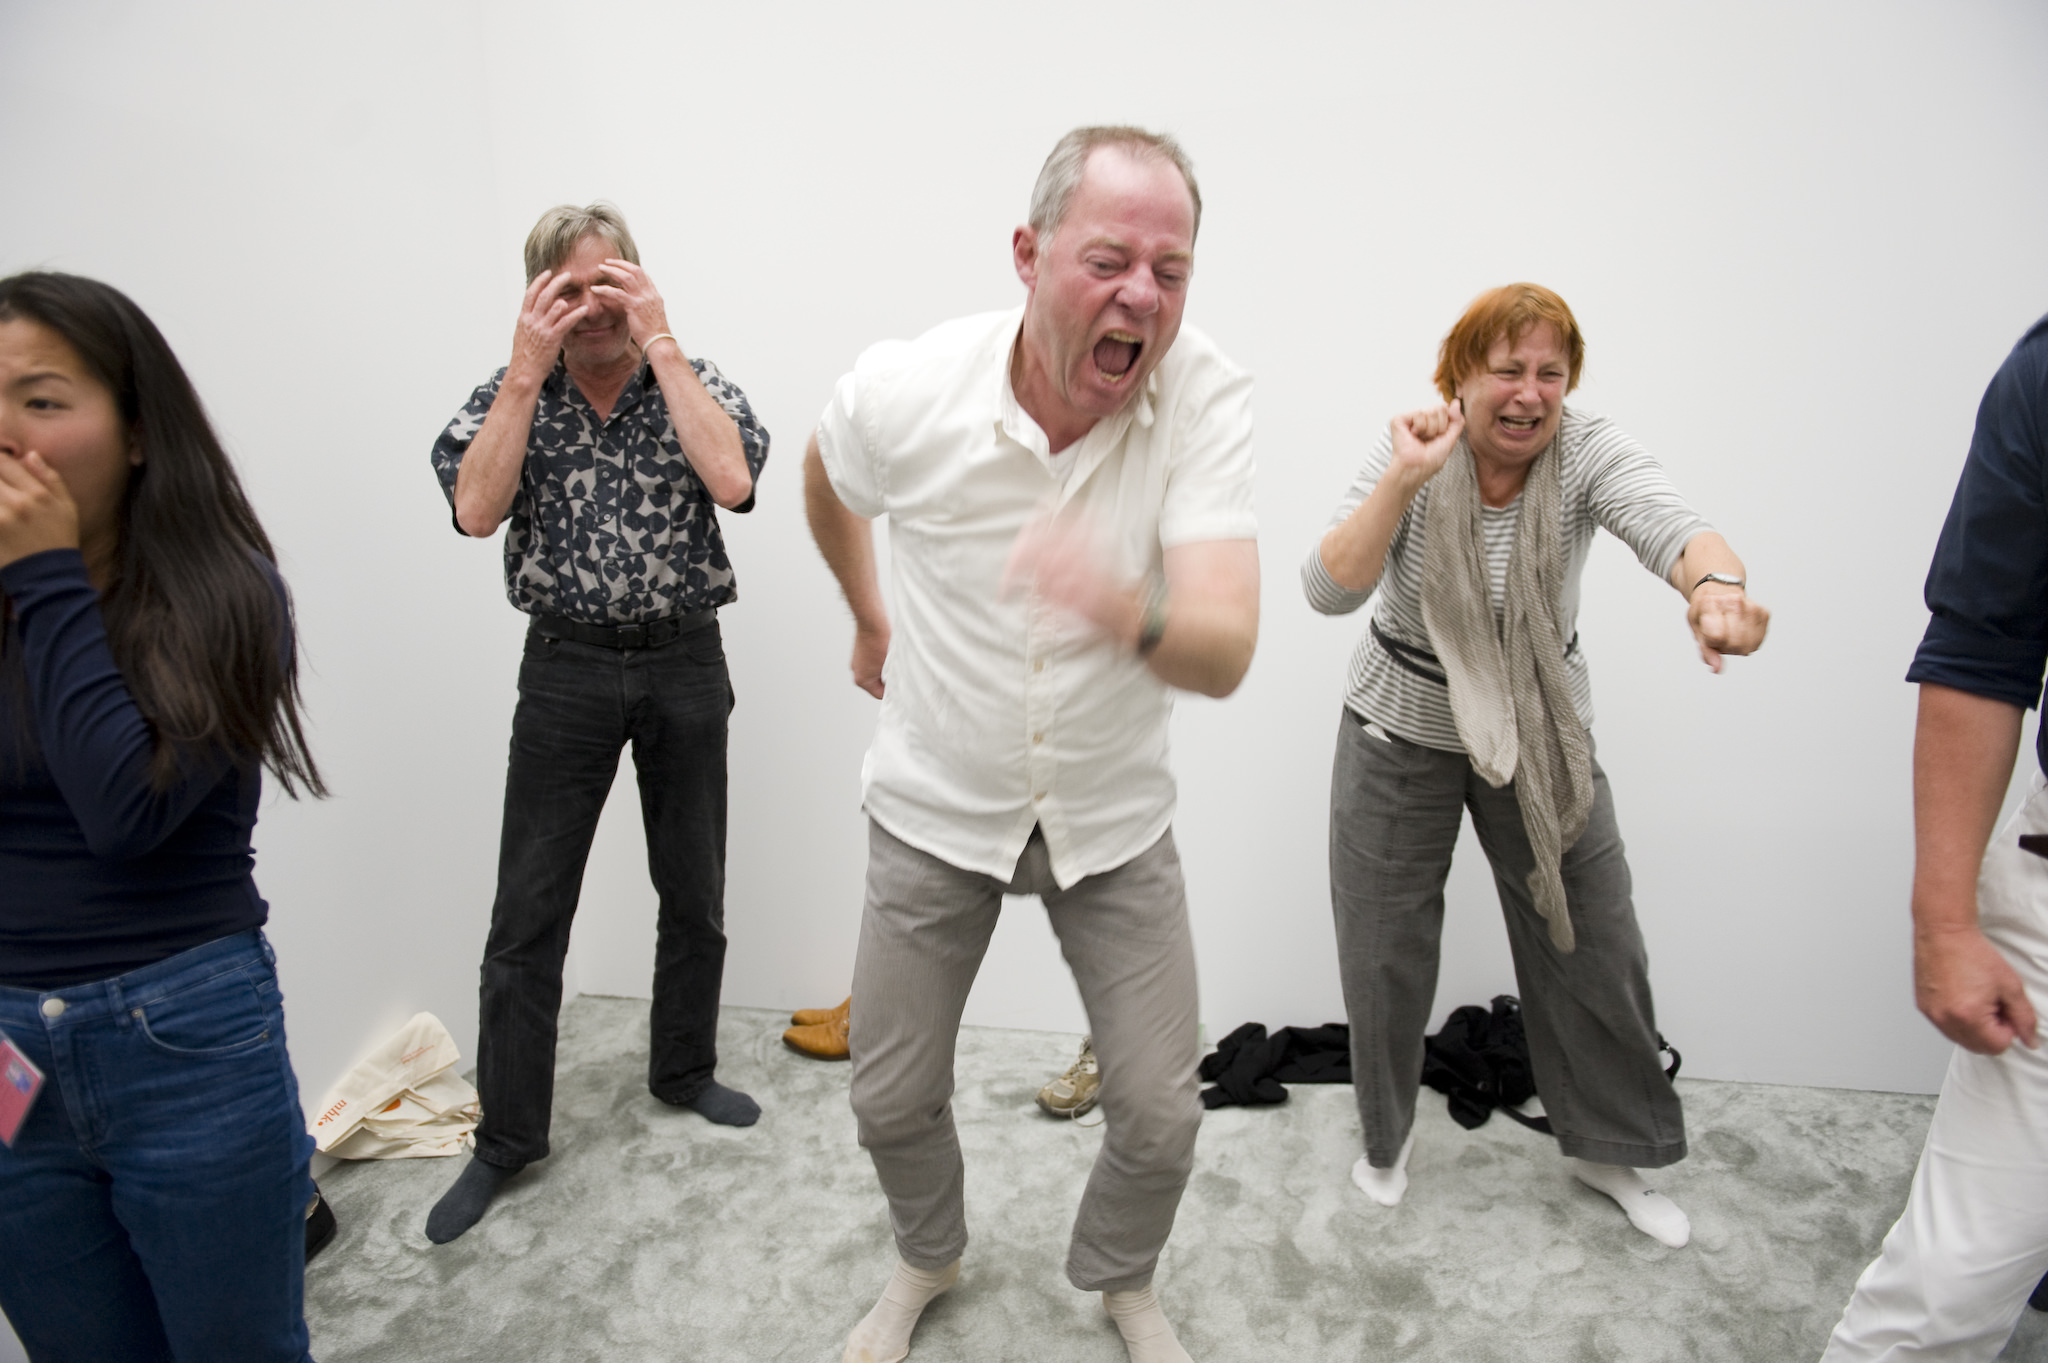 Stuart Ringholt, Anger Workshops, 2012. Neue Galerie, Kassel. Documenta 13, 2012.